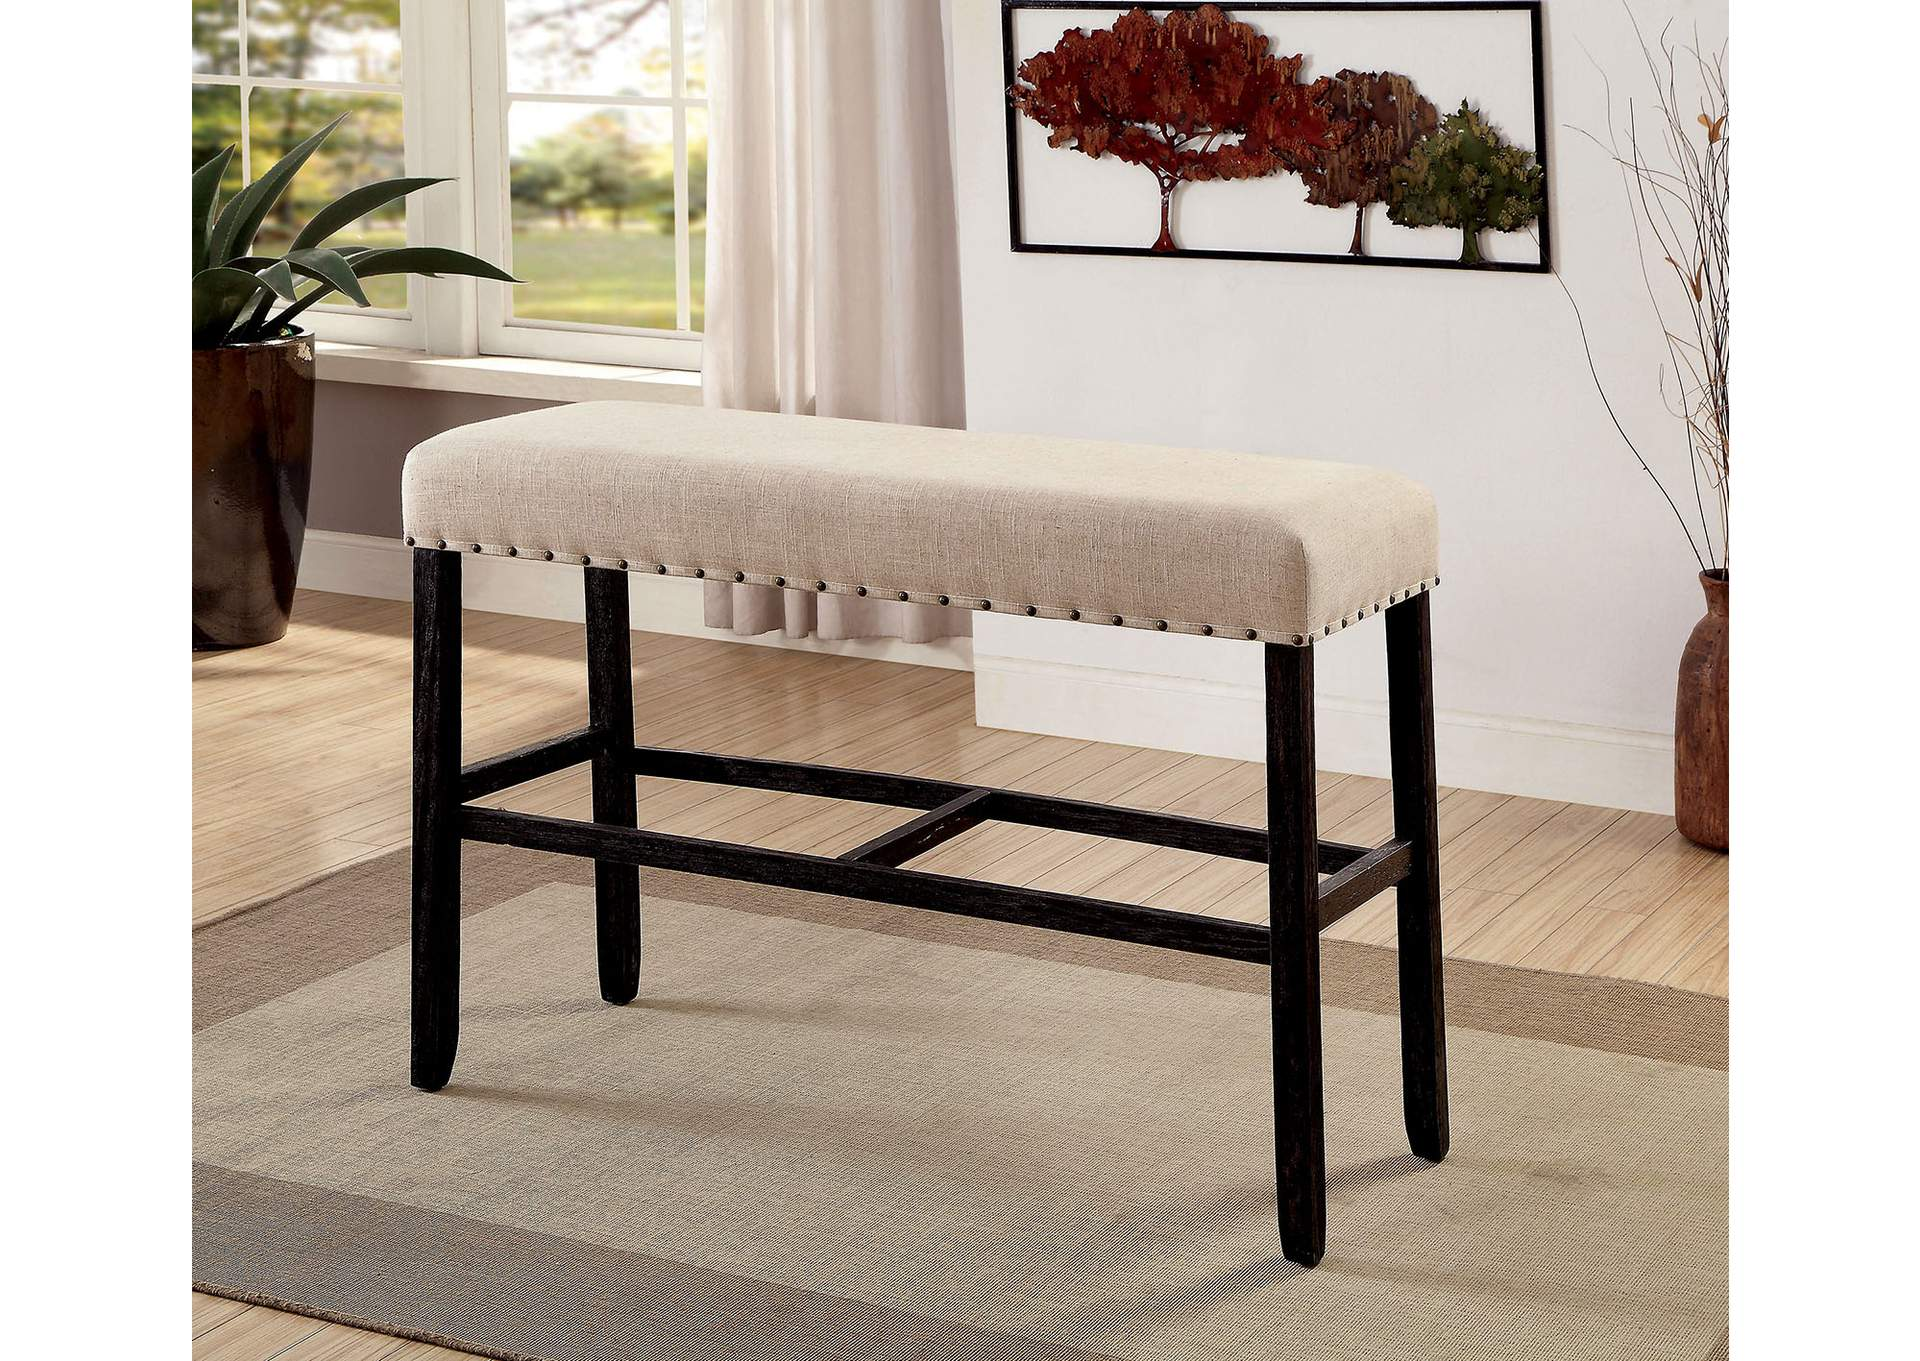 Sania Antique Black Bar Bench,Furniture of America